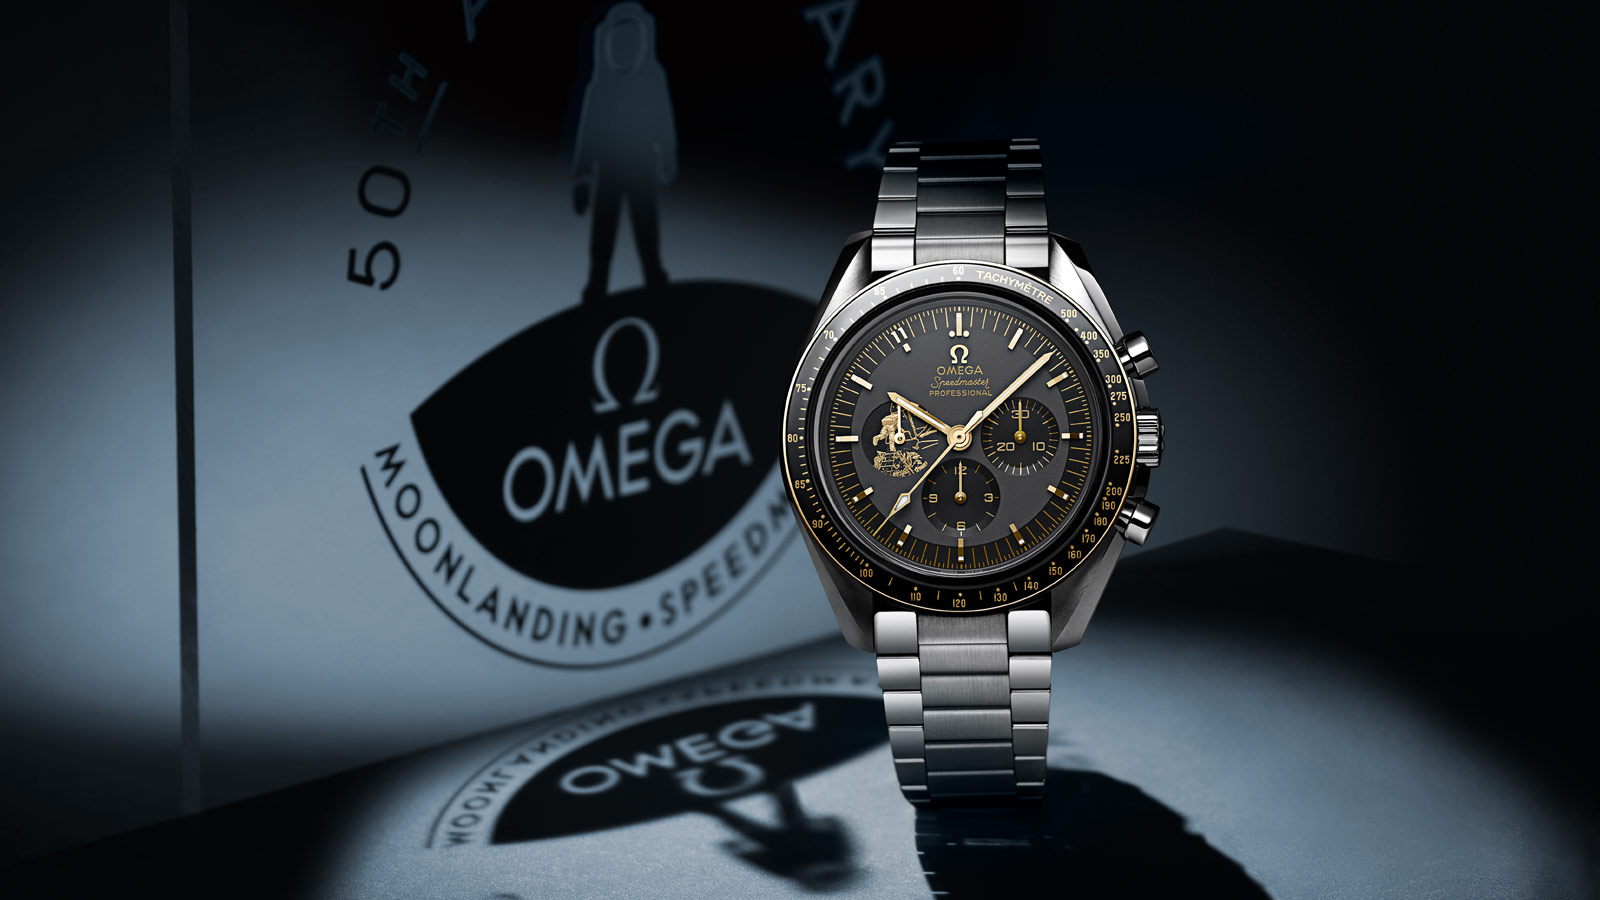 Speedmaster Moonwatch Moonwatch Anniversary Limited Series Watch - 310.20.42.50.01.001